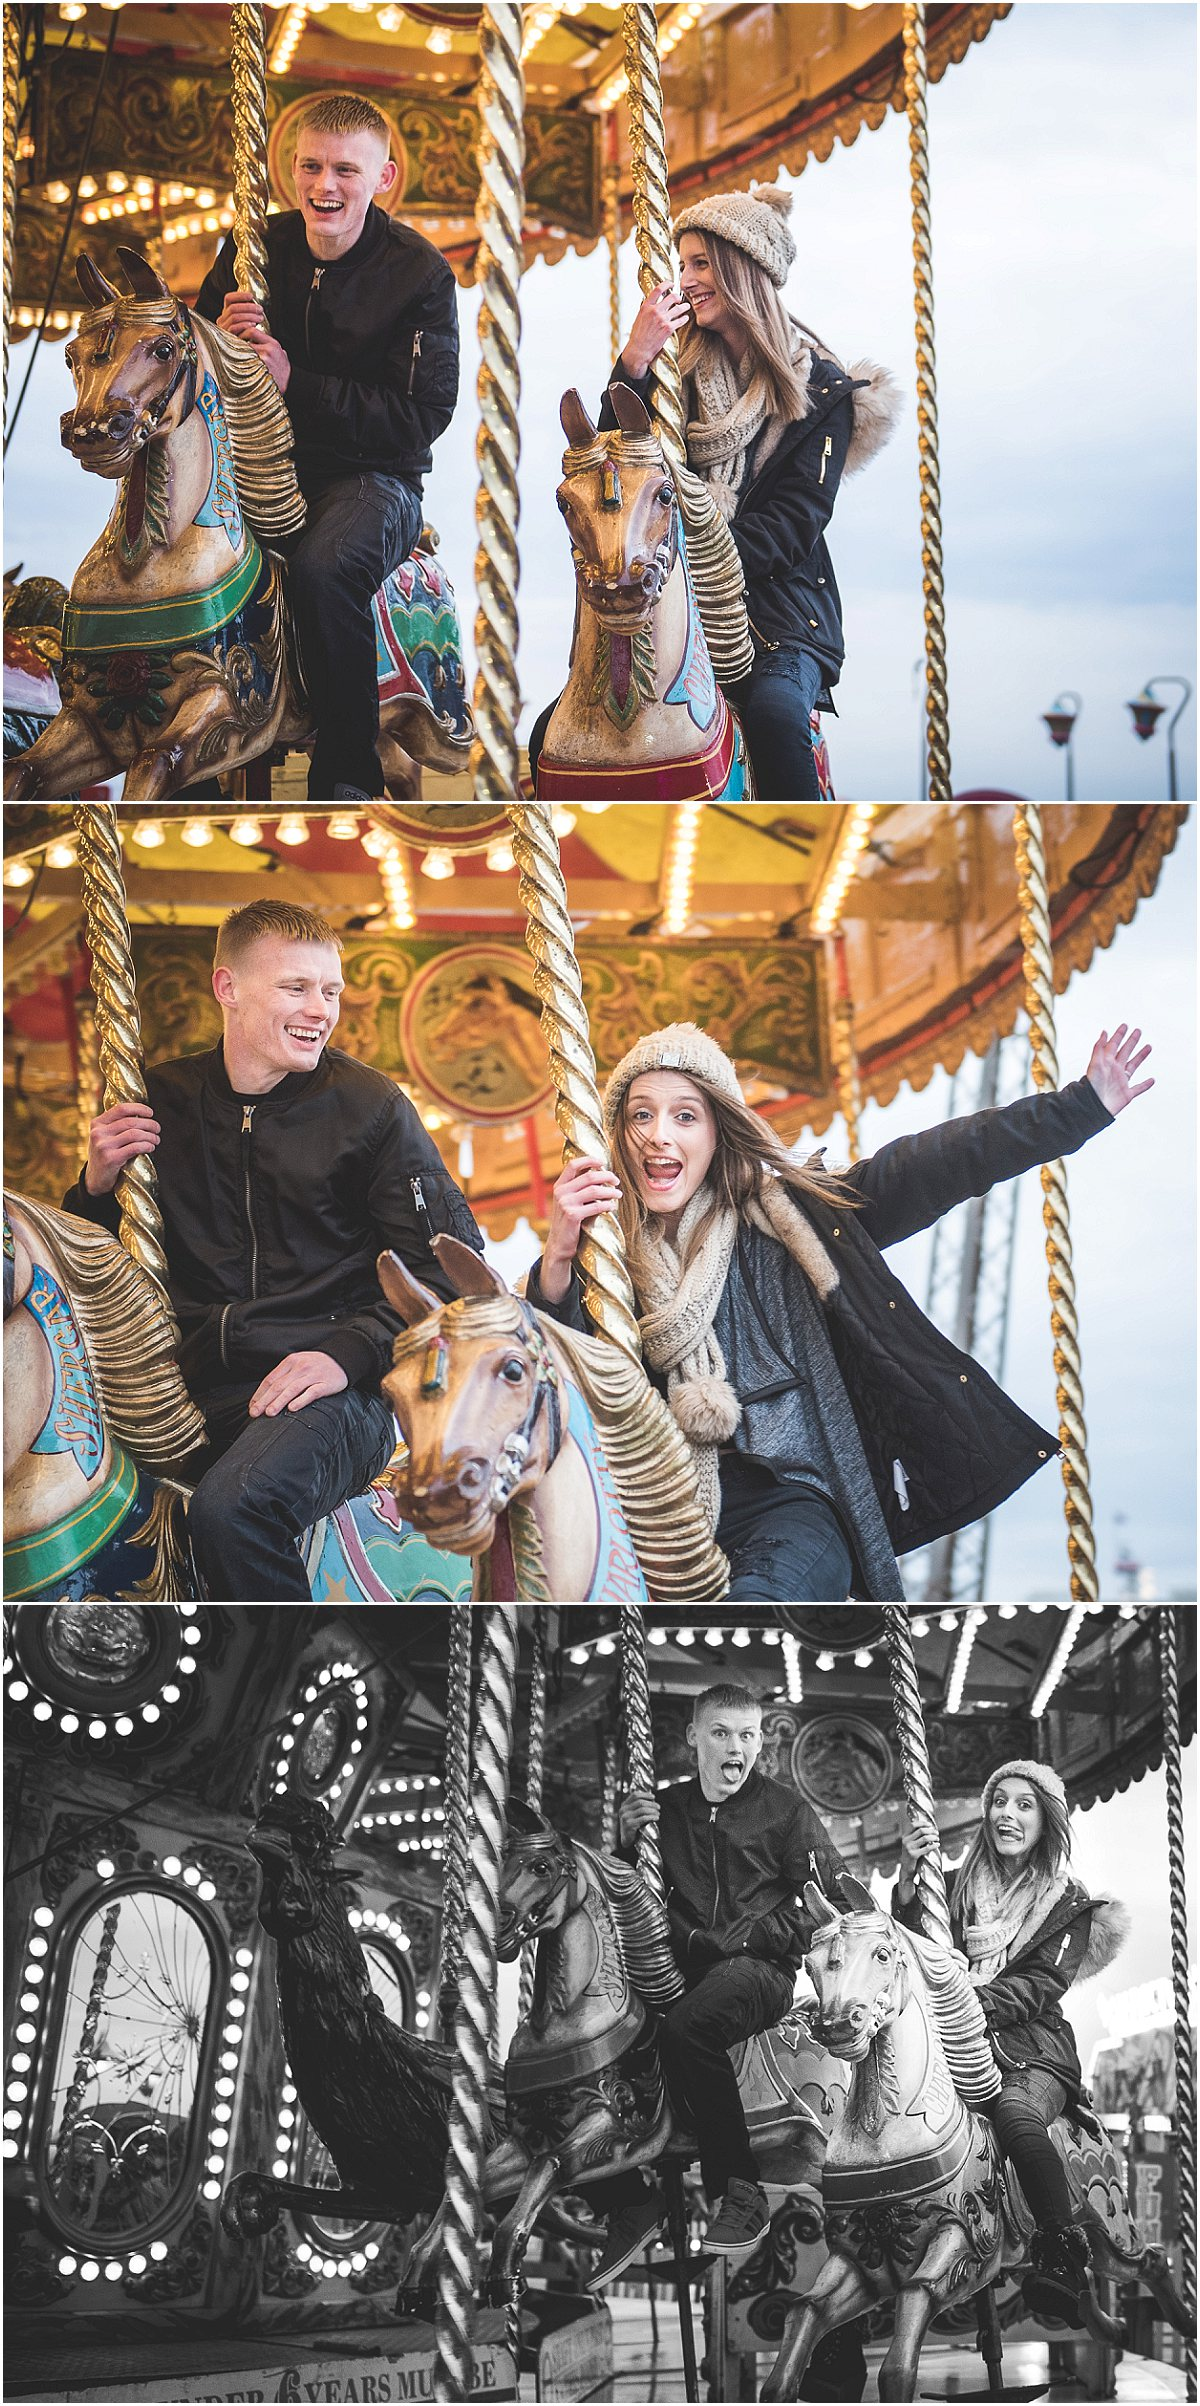 Riding the Carousel at Blackpool South Pier - Pre-Wedding Shoot